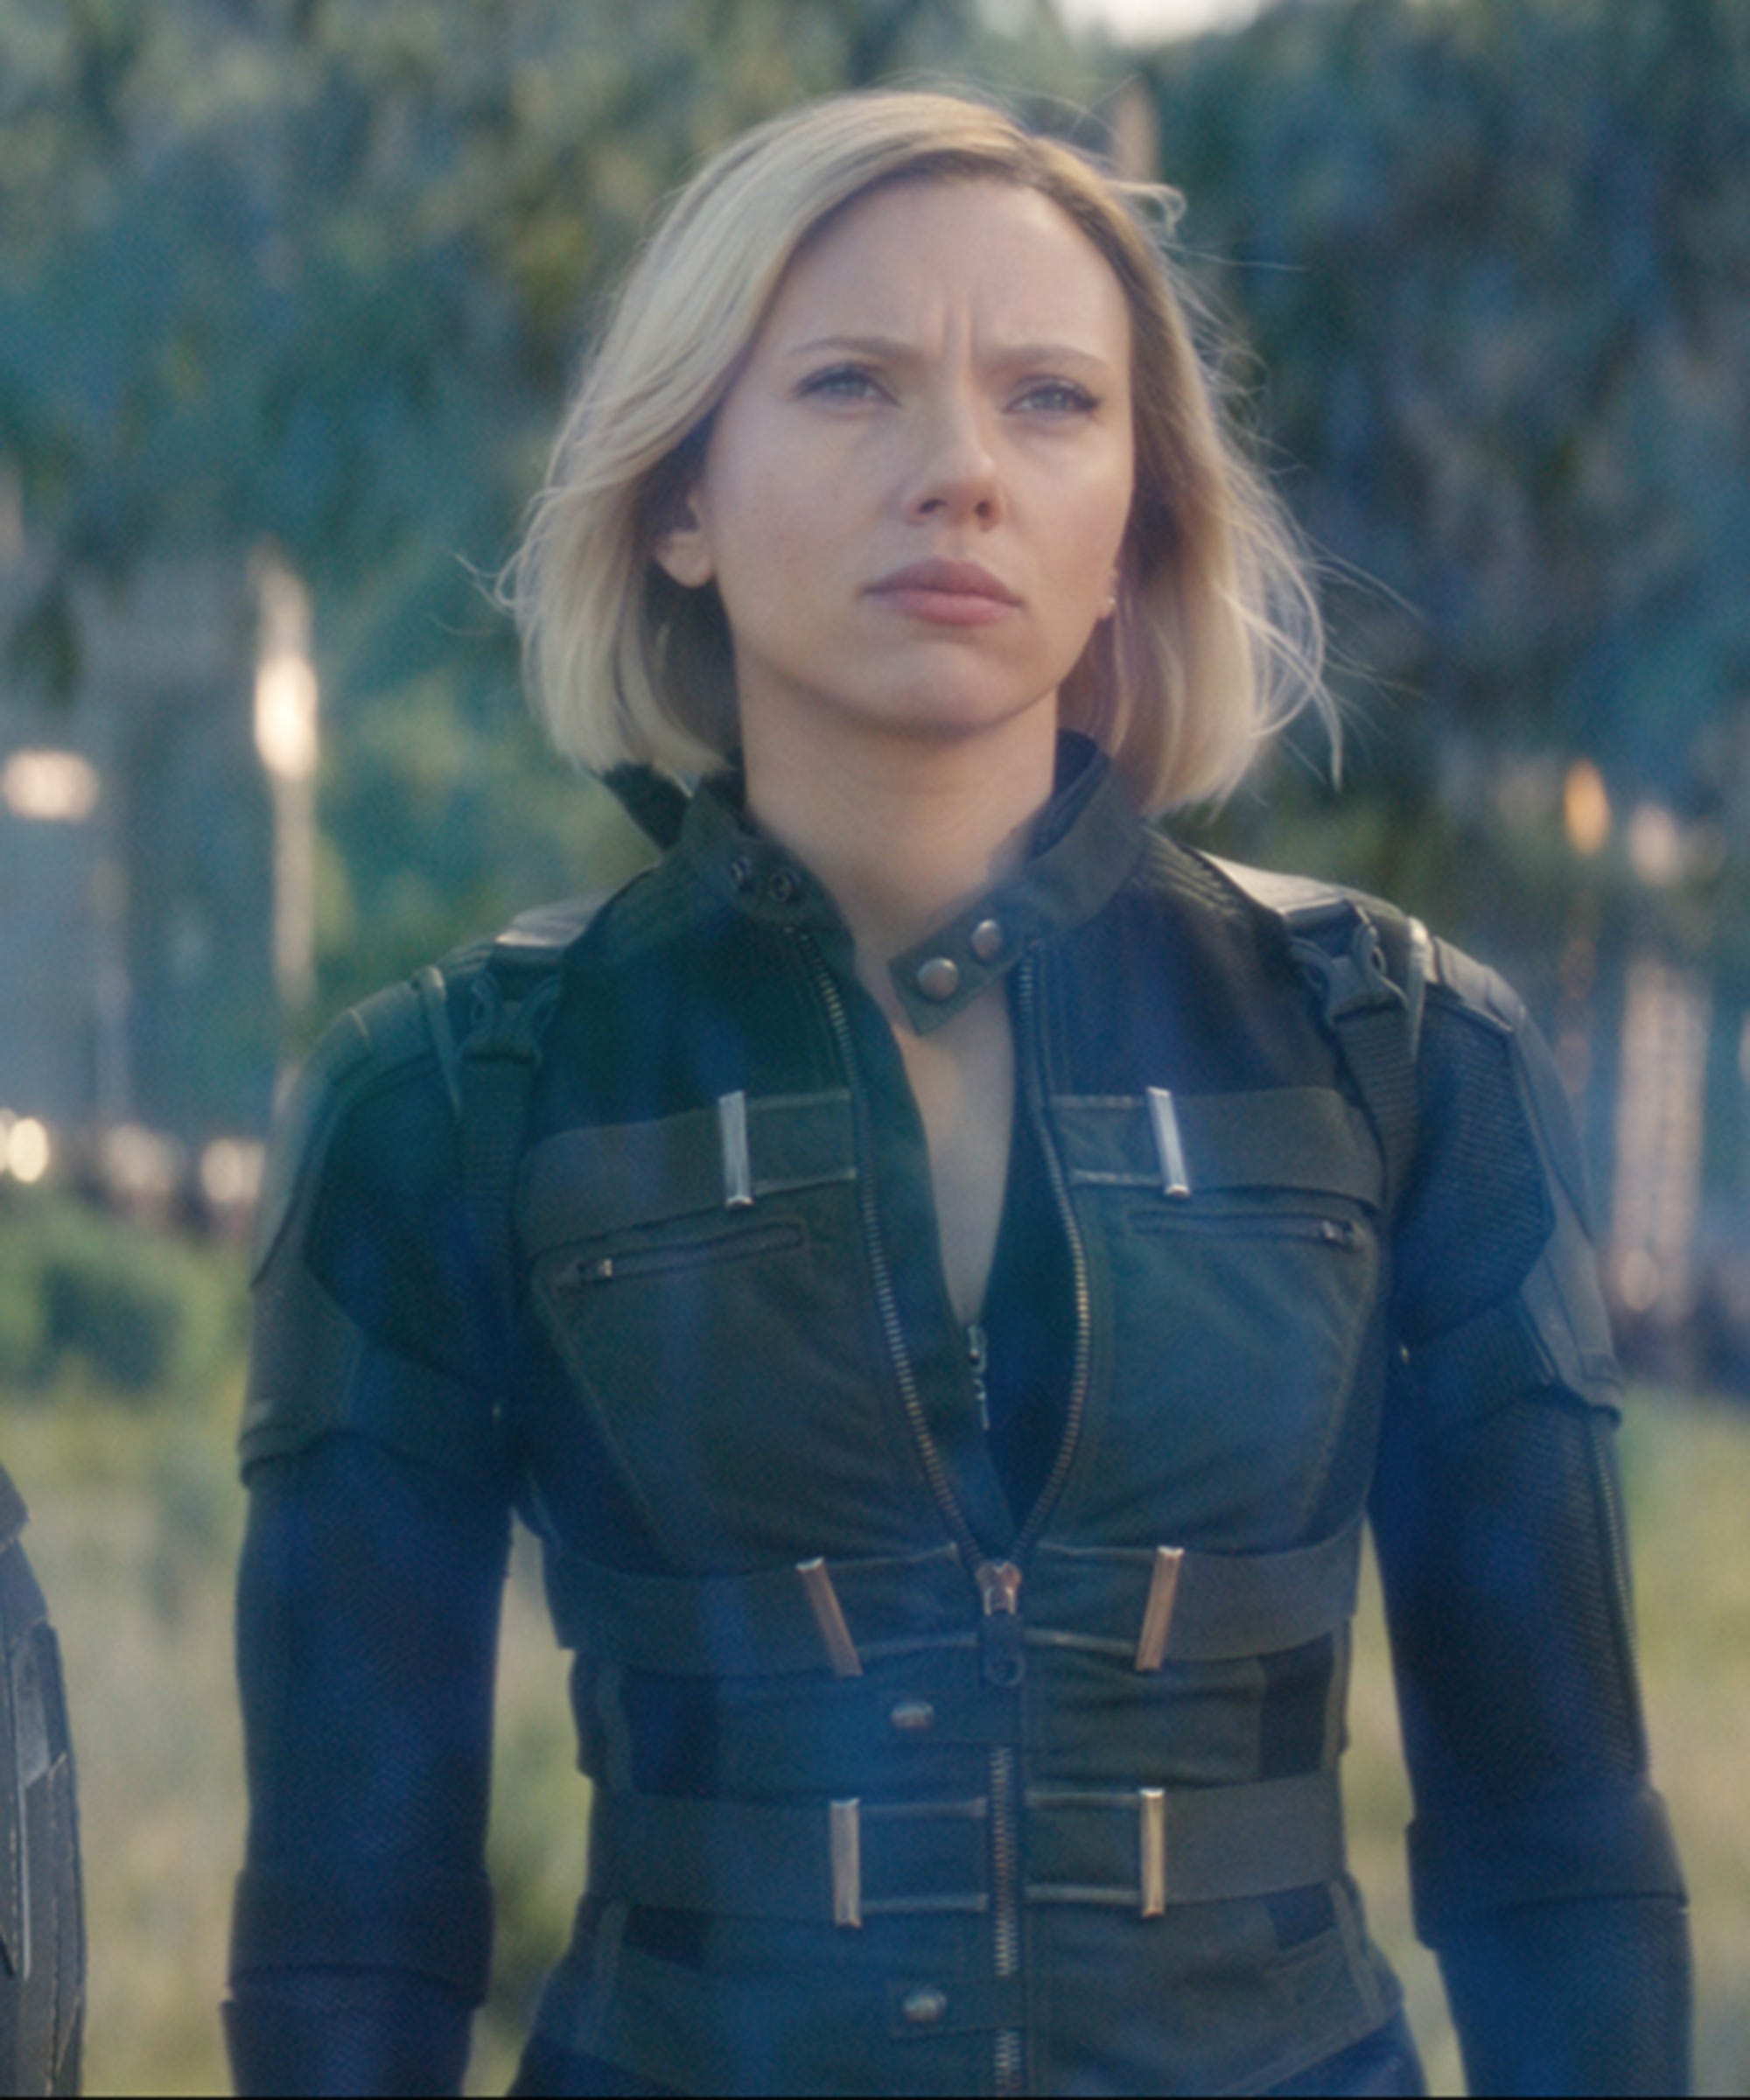 Black Widow Movie Cast Who Plays Who Guide